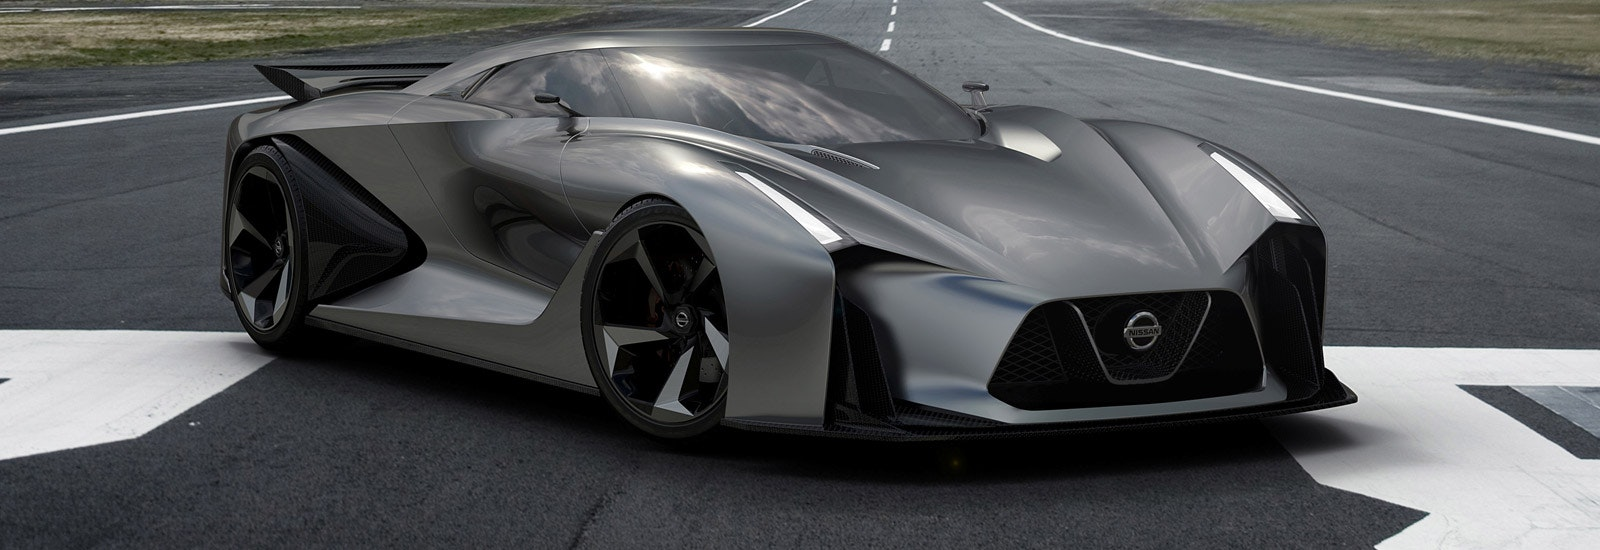 R36 Gtr Price >> New Nissan Gt R R36 Skyline Price Specs And Release Date Carwow